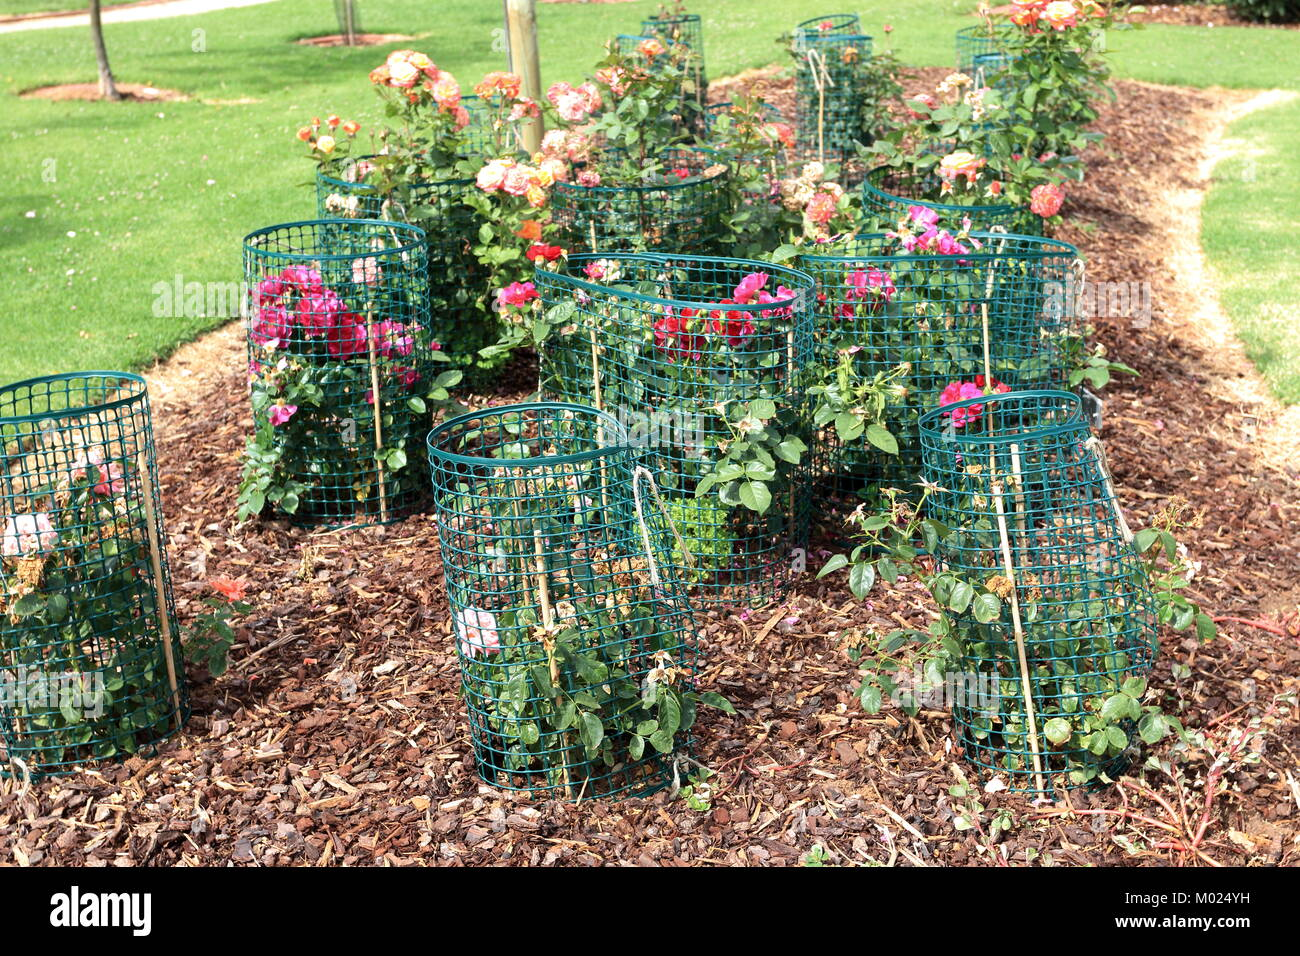 Roses In Garden: Rose Bushes Stock Photos & Rose Bushes Stock Images